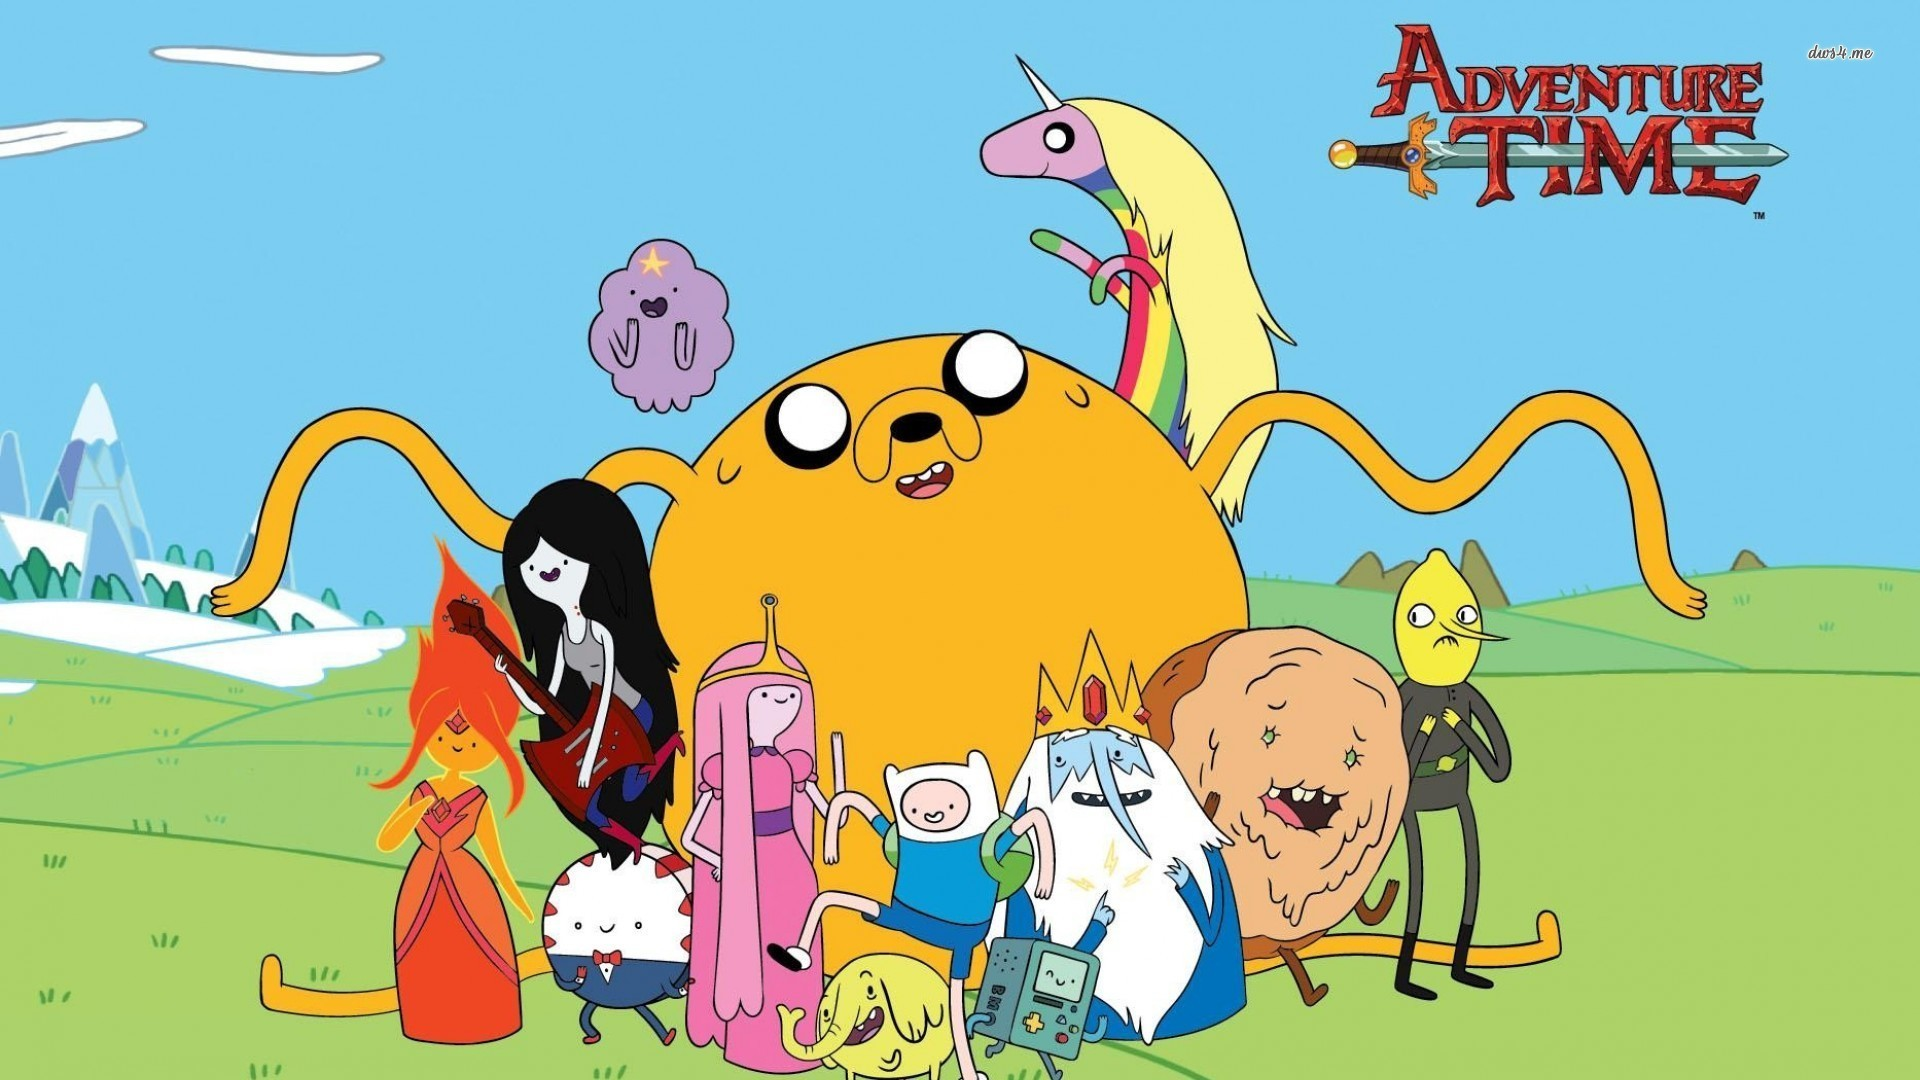 Adventure Time characters on the field wallpaper 1920x1080 .